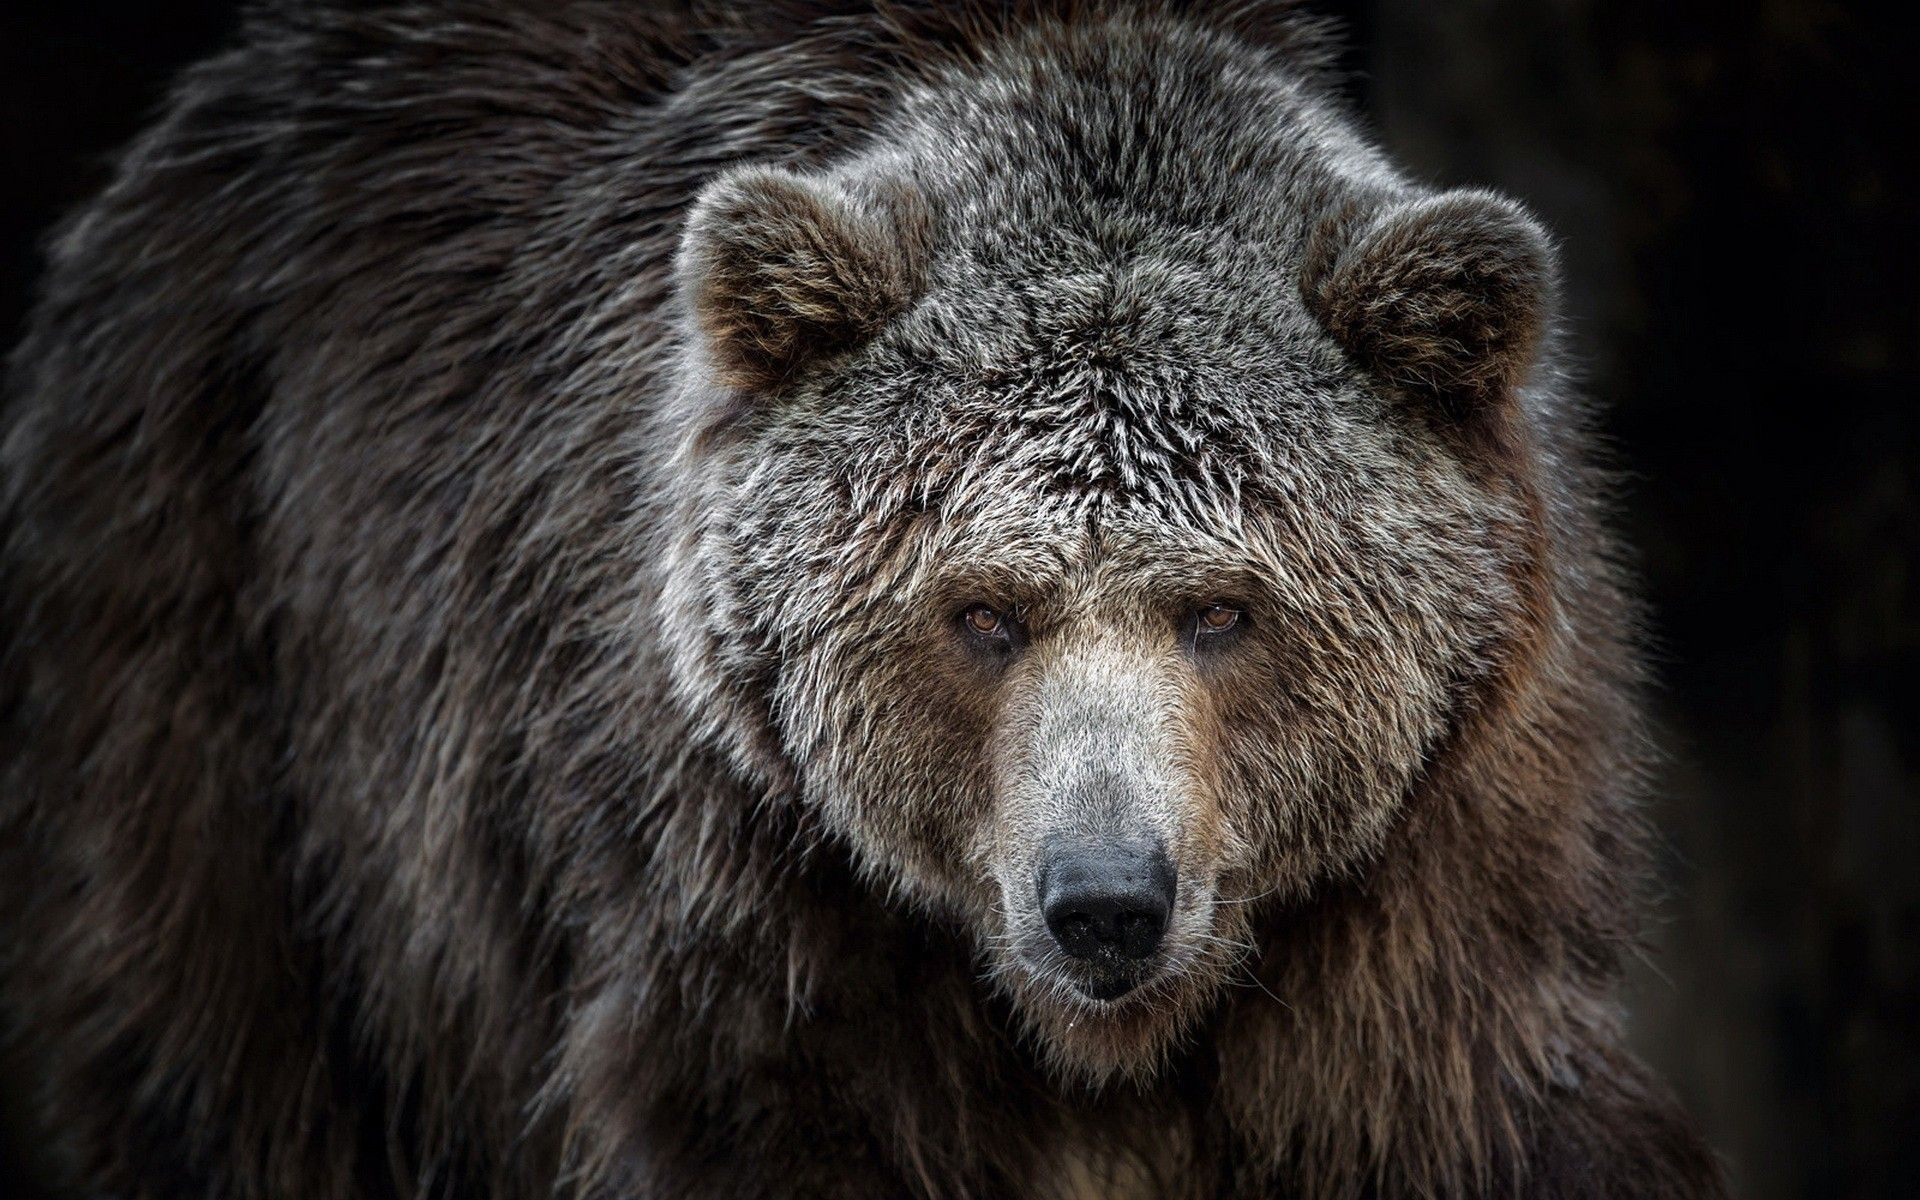 General 1920x1200 animals bears Grizzly Bears Bear